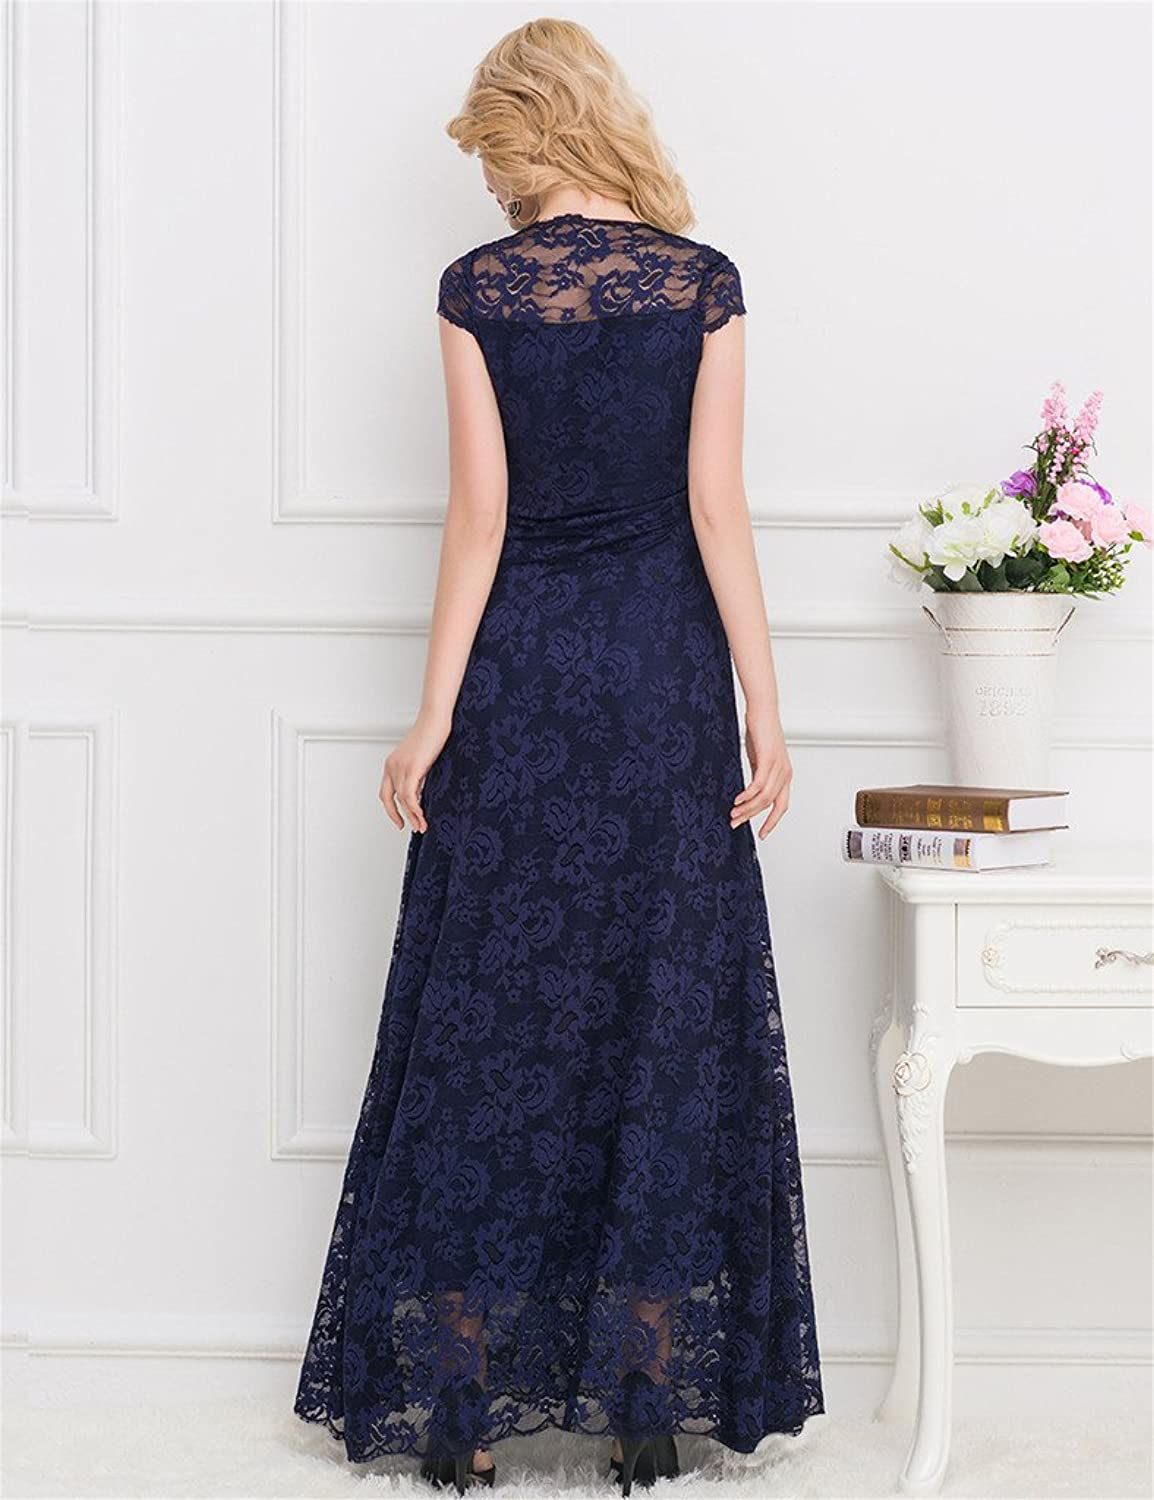 ohyeah Women Floral Lace Long Dress V-neck Solid Maxi Dress Elegant Party Gown at Amazon Womens Clothing store: